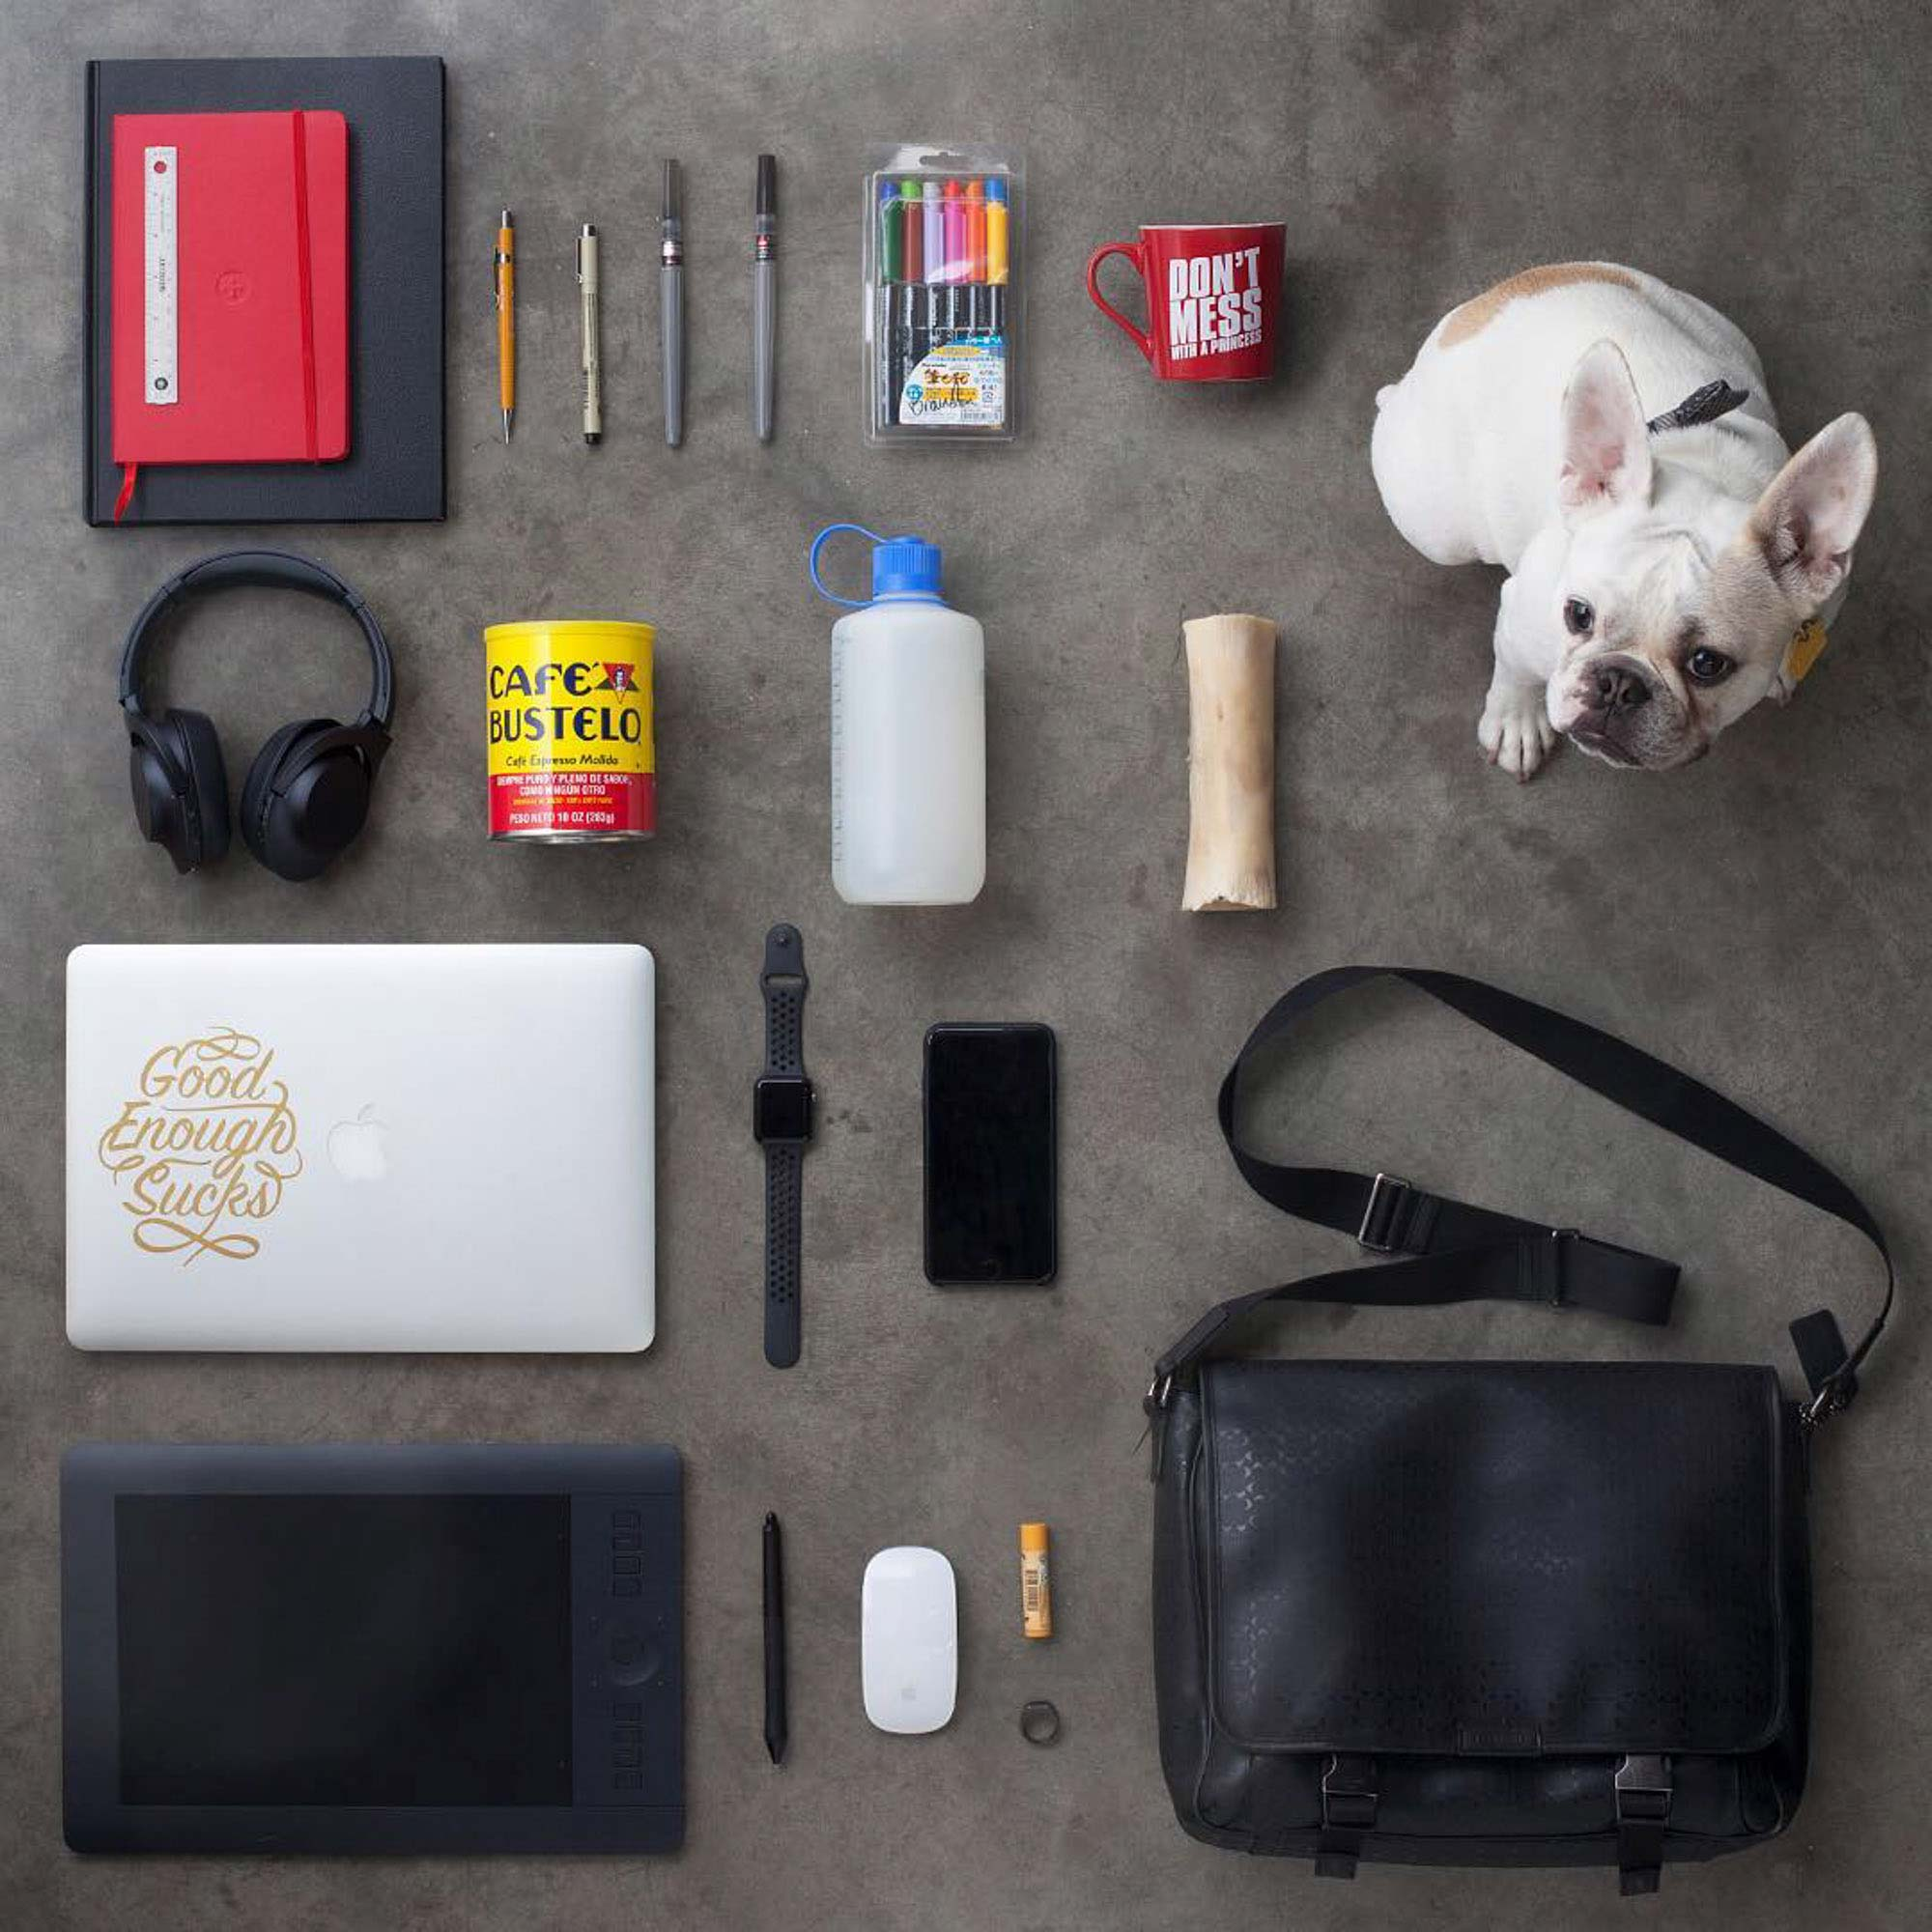 Knolling photo with dog for Crispin Porter + Bogusky | CP+B Boulder | Still Life Photography